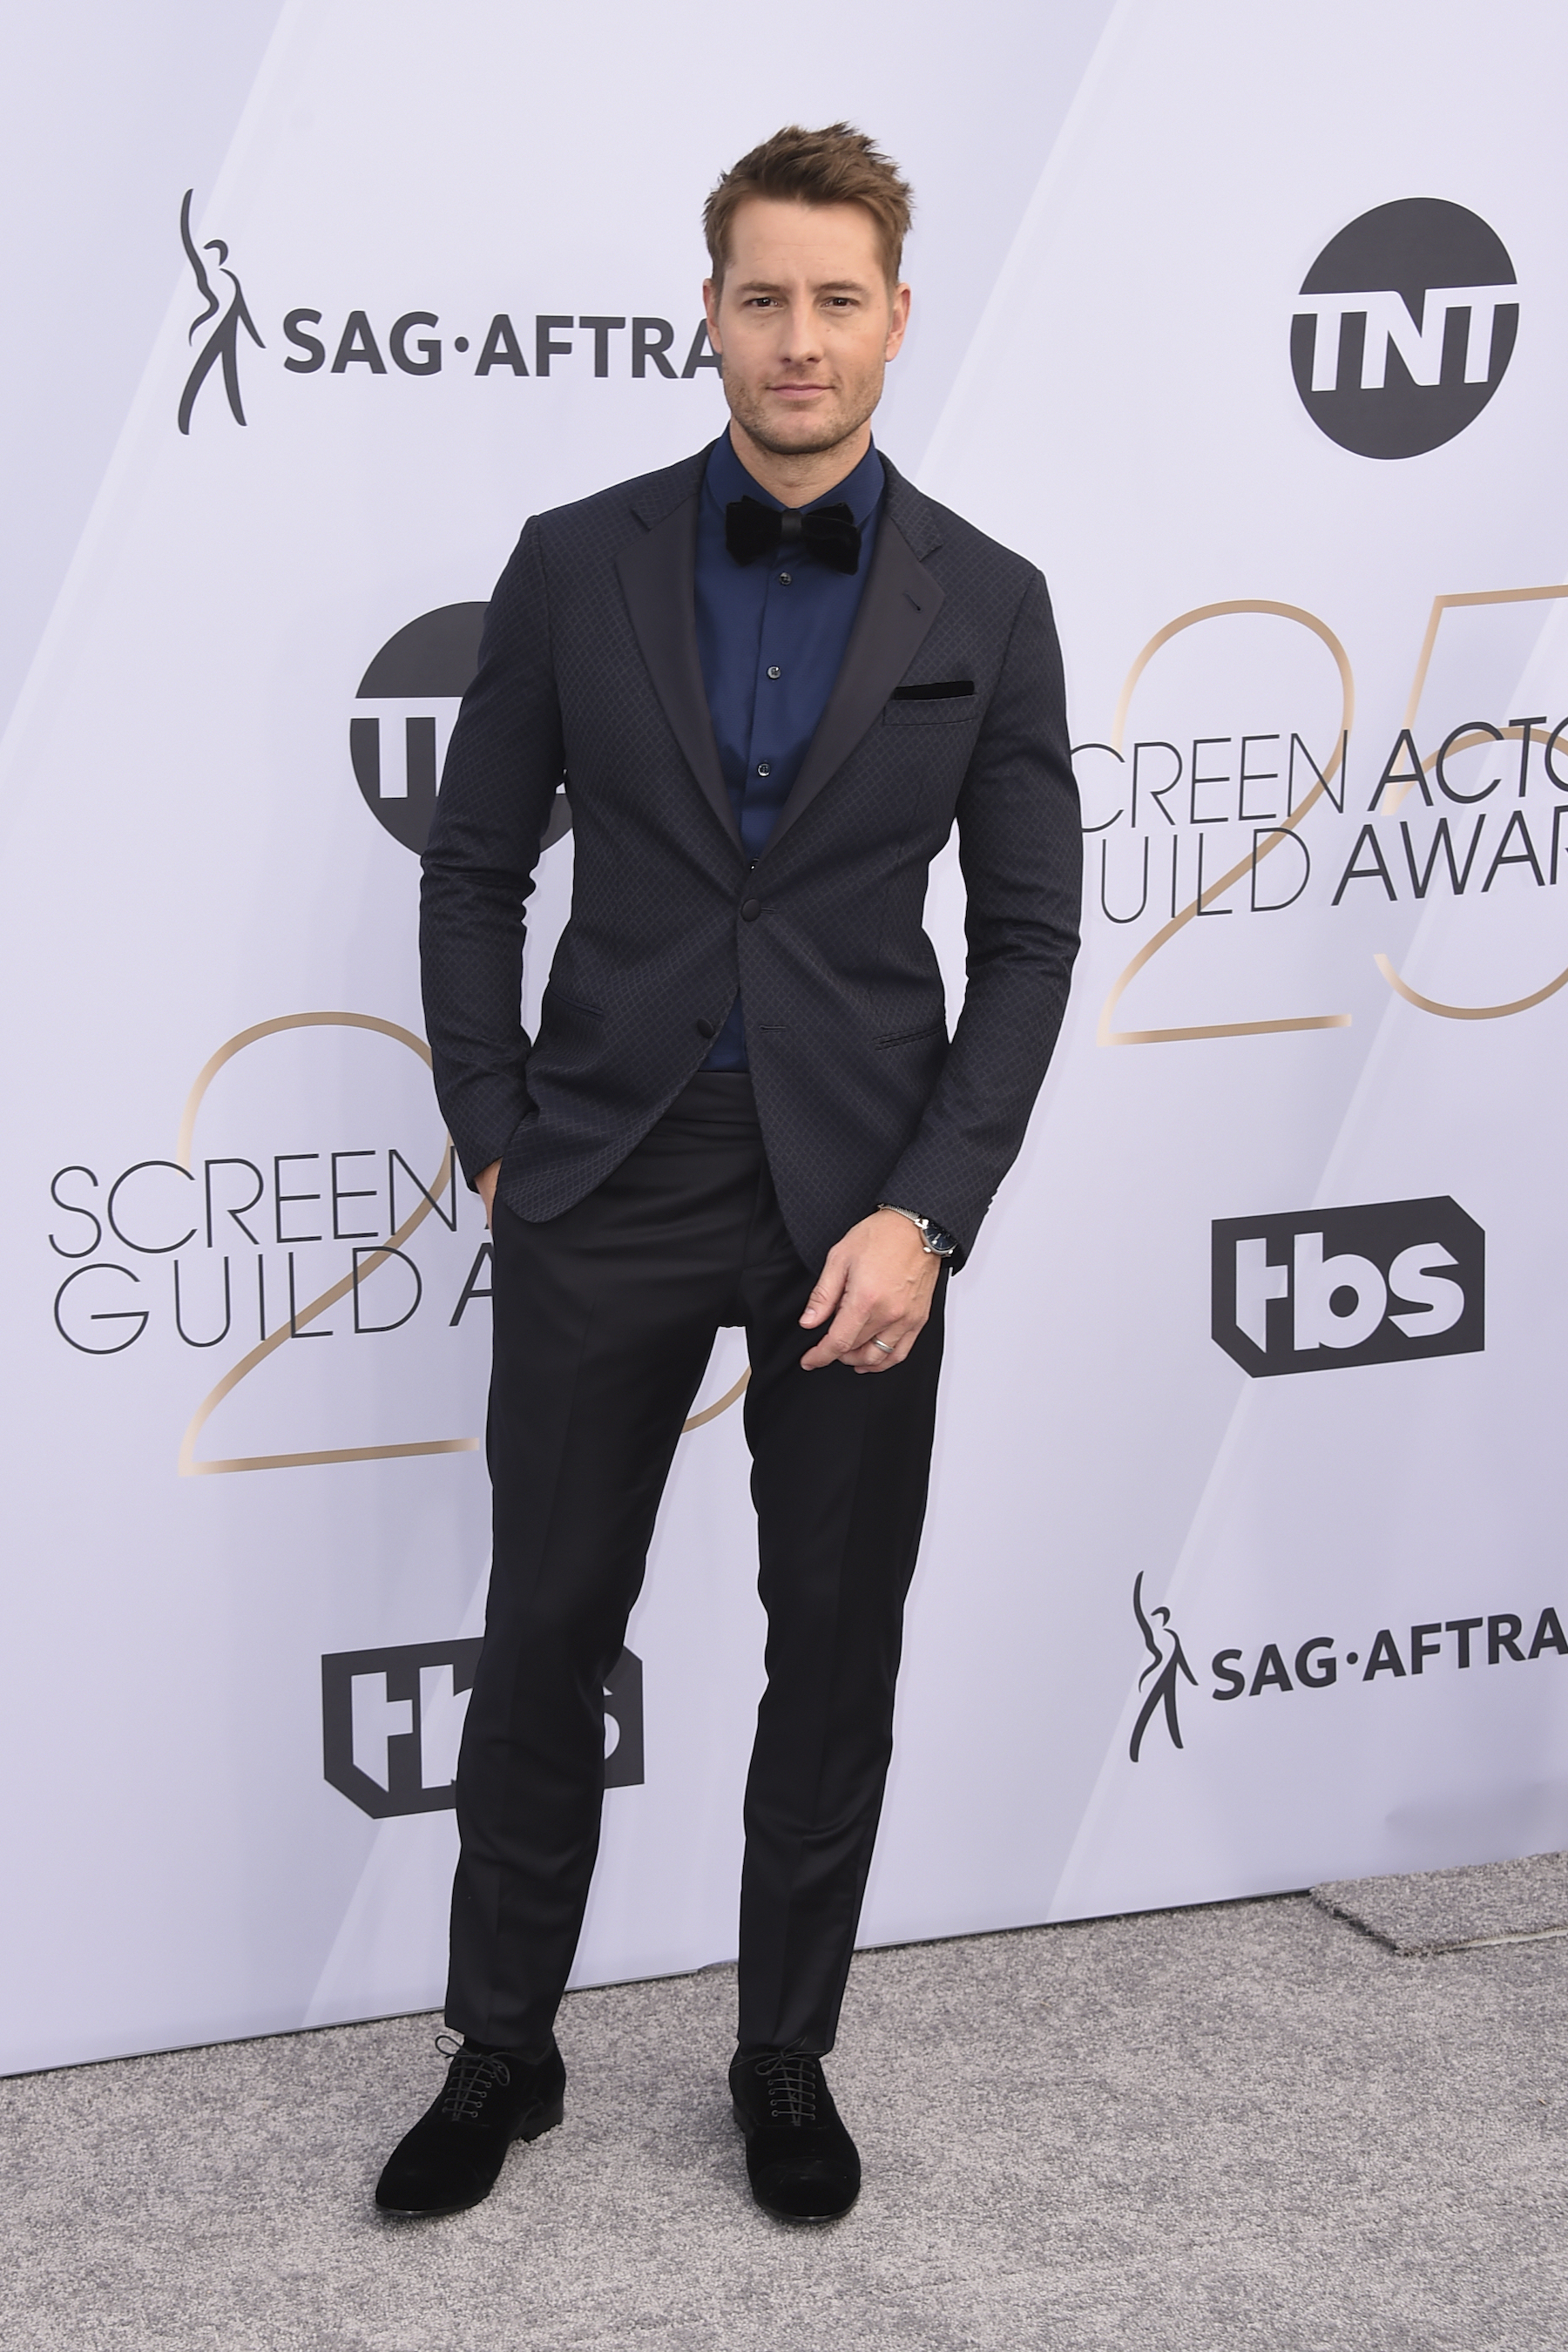 "<div class=""meta image-caption""><div class=""origin-logo origin-image ap""><span>AP</span></div><span class=""caption-text"">Justin Hartley arrives at the 25th annual Screen Actors Guild Awards at the Shrine Auditorium & Expo Hall on Sunday, Jan. 27, 2019, in Los Angeles. (Jordan Strauss/Invision/AP)</span></div>"